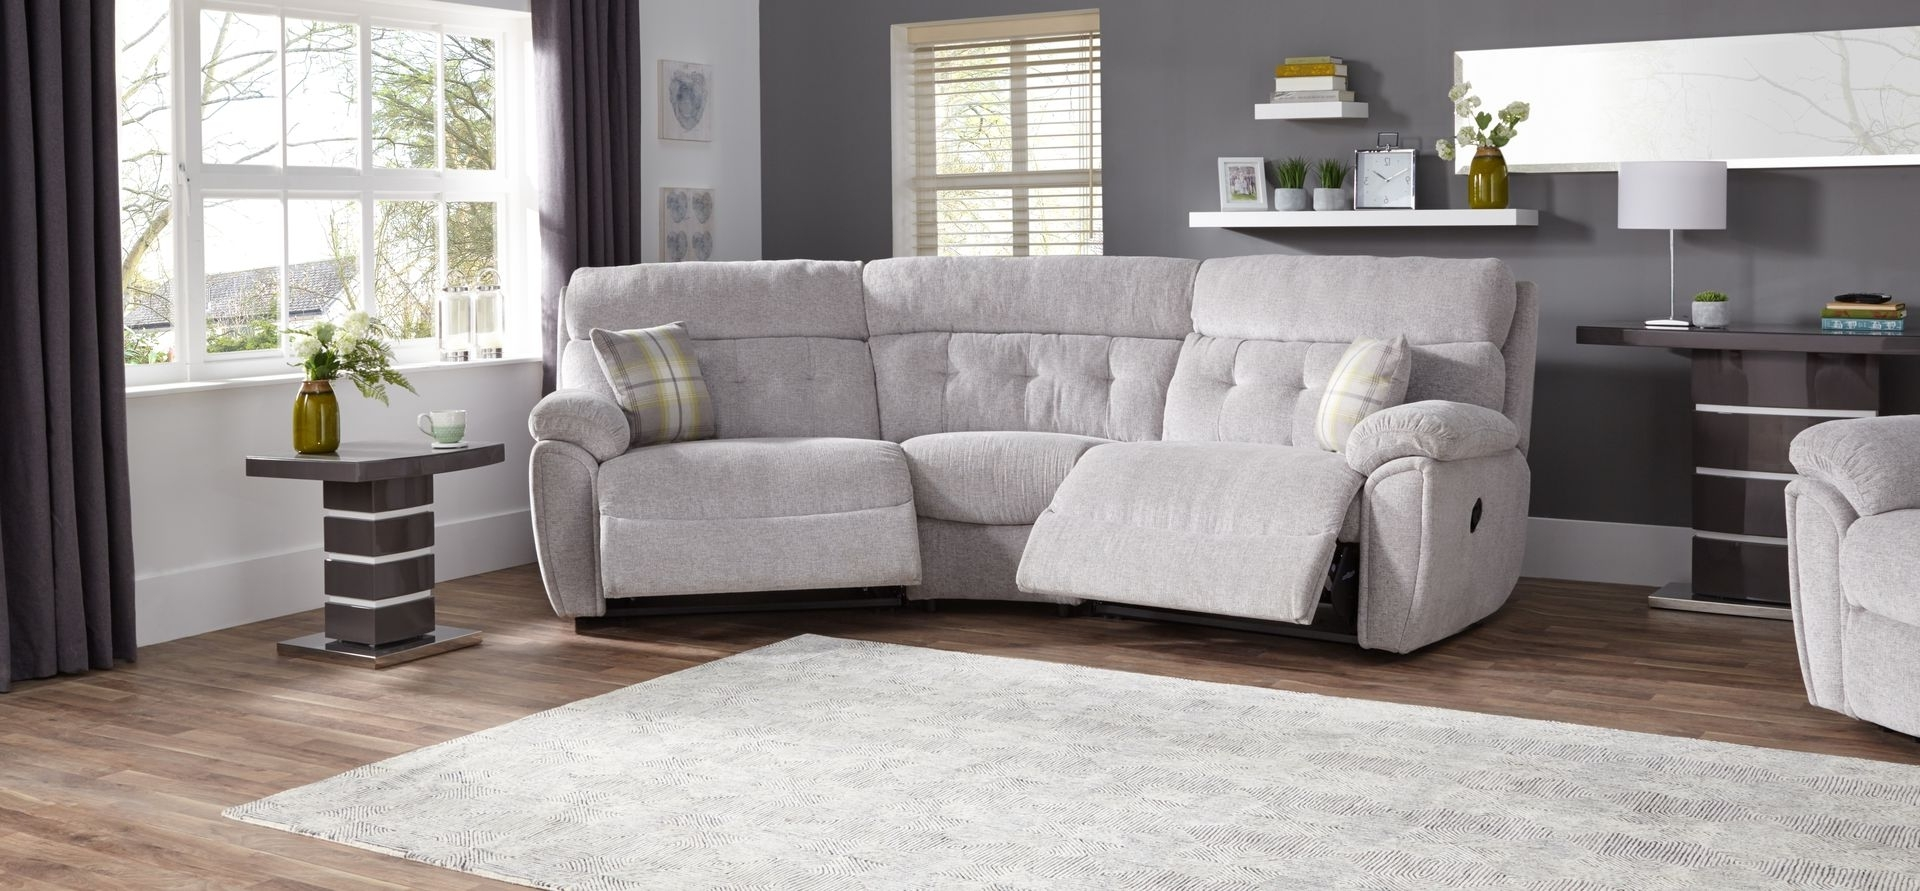 Destiny 4 Seater Curved Manual Recliner Sofa – Scs With Regard To Newest Curved Recliner Sofas (View 14 of 20)